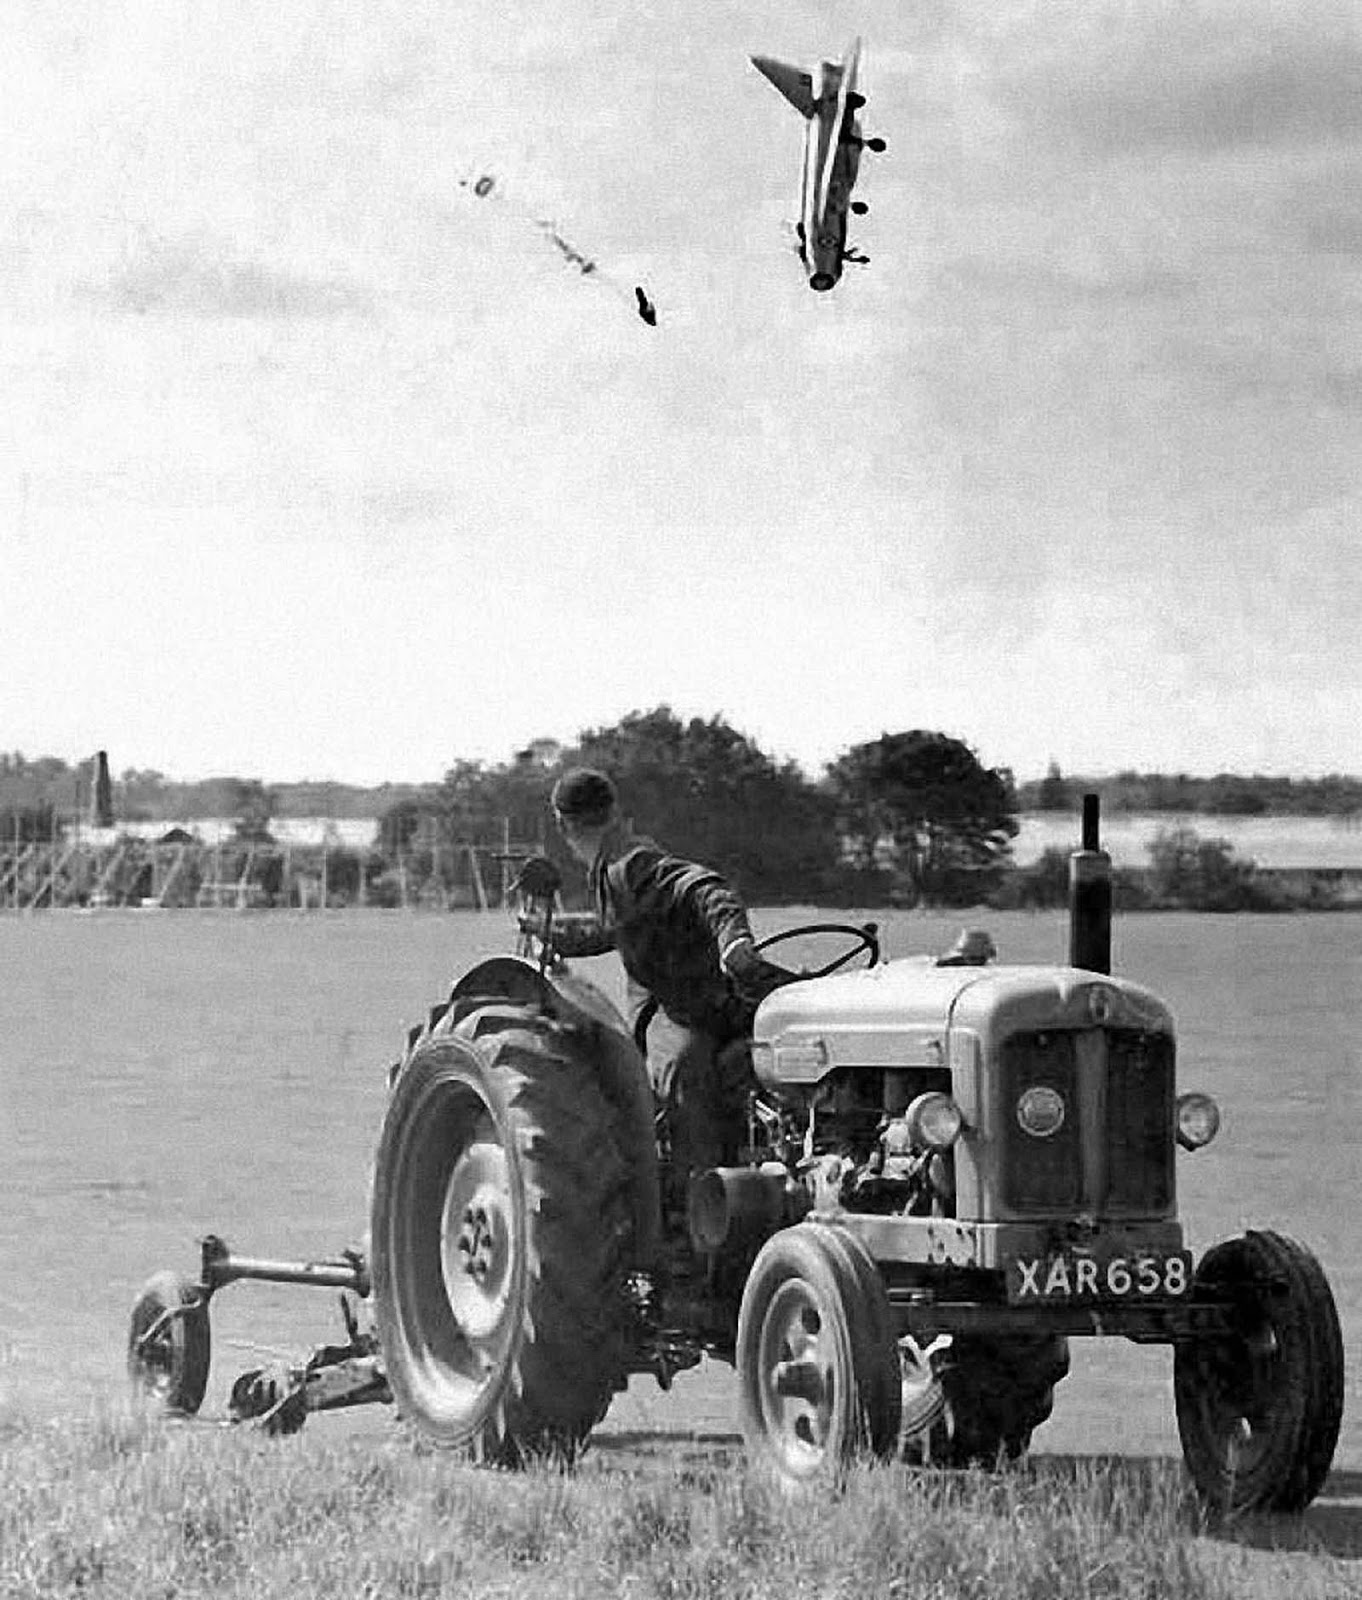 Test pilot George Aird ejected from his English Electric Lightning F1 aircraft at a very low altitude in Hatfield, Hertfordshire. September 13, 1962